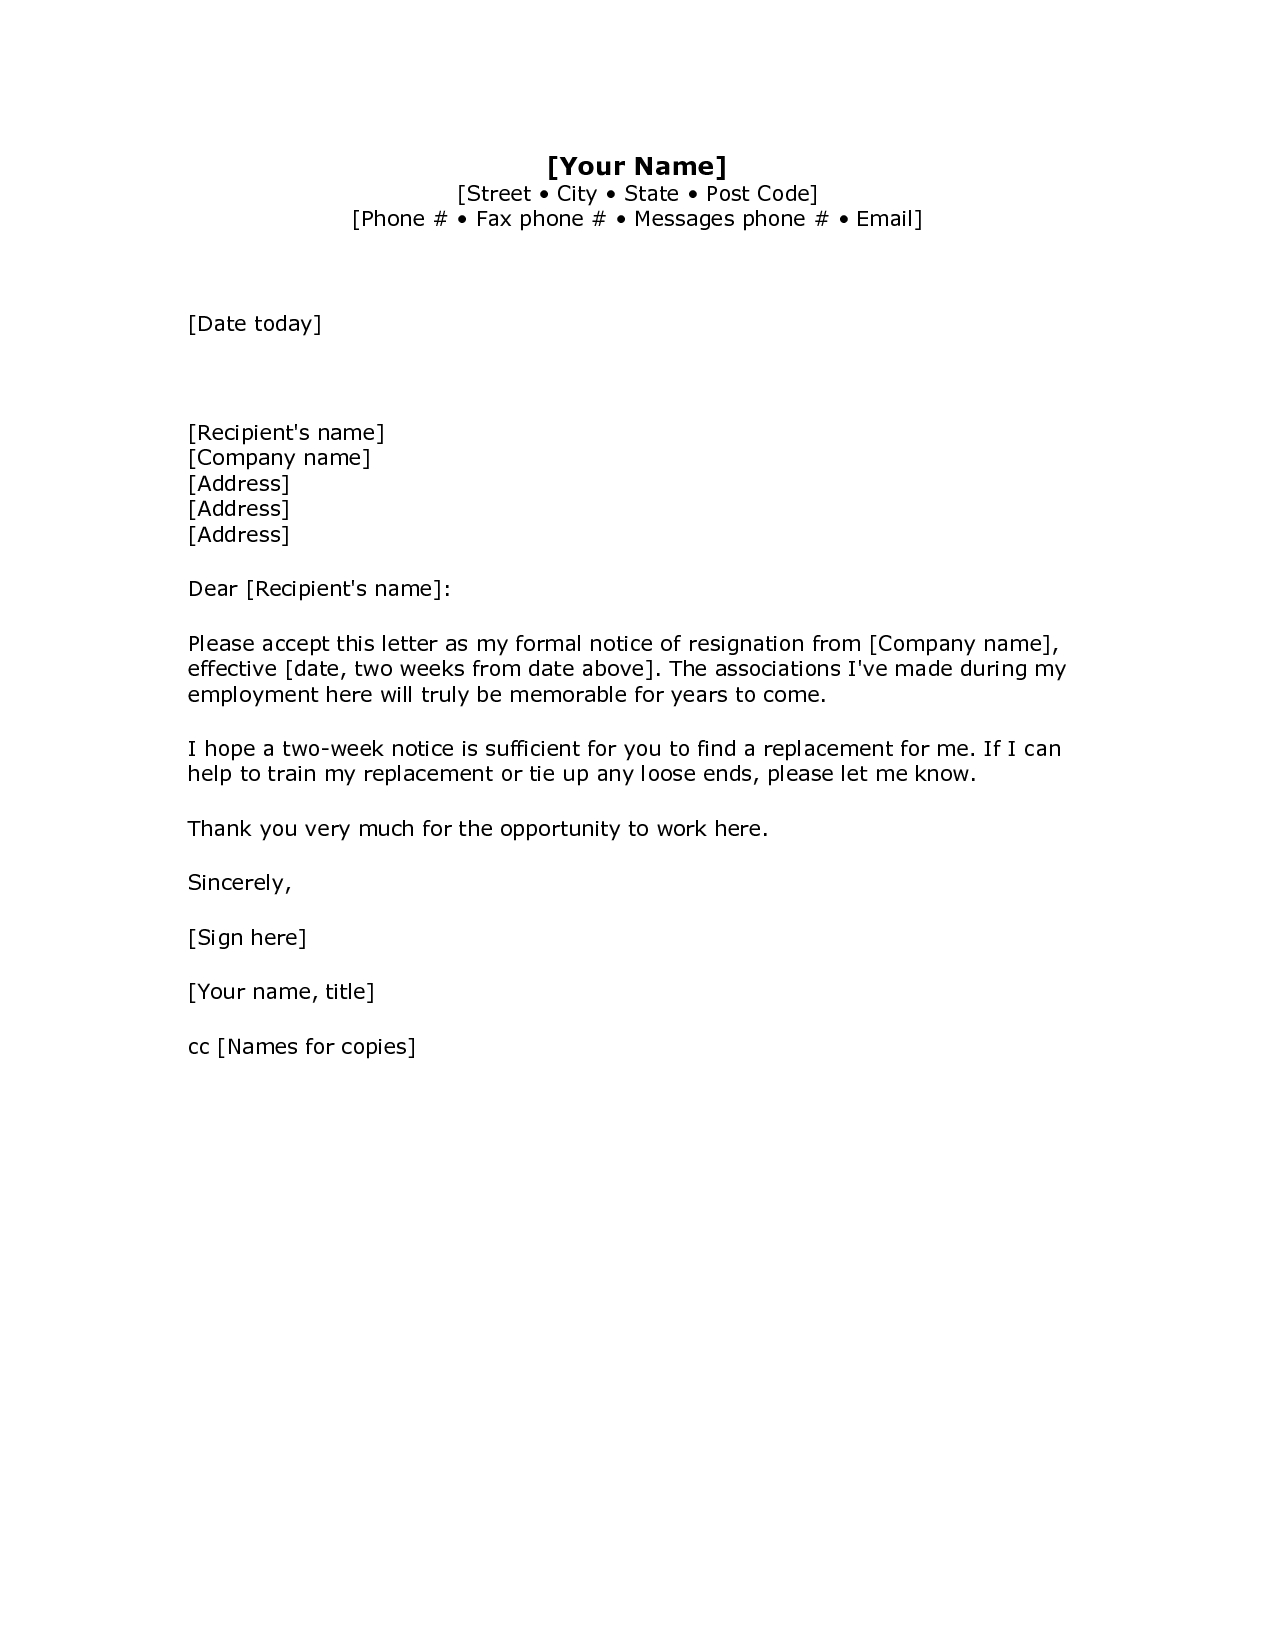 Appointment Reminder Letter Template - 2 Weeks Notice Letter Resignation Letter Week Notice Words Hdwriting